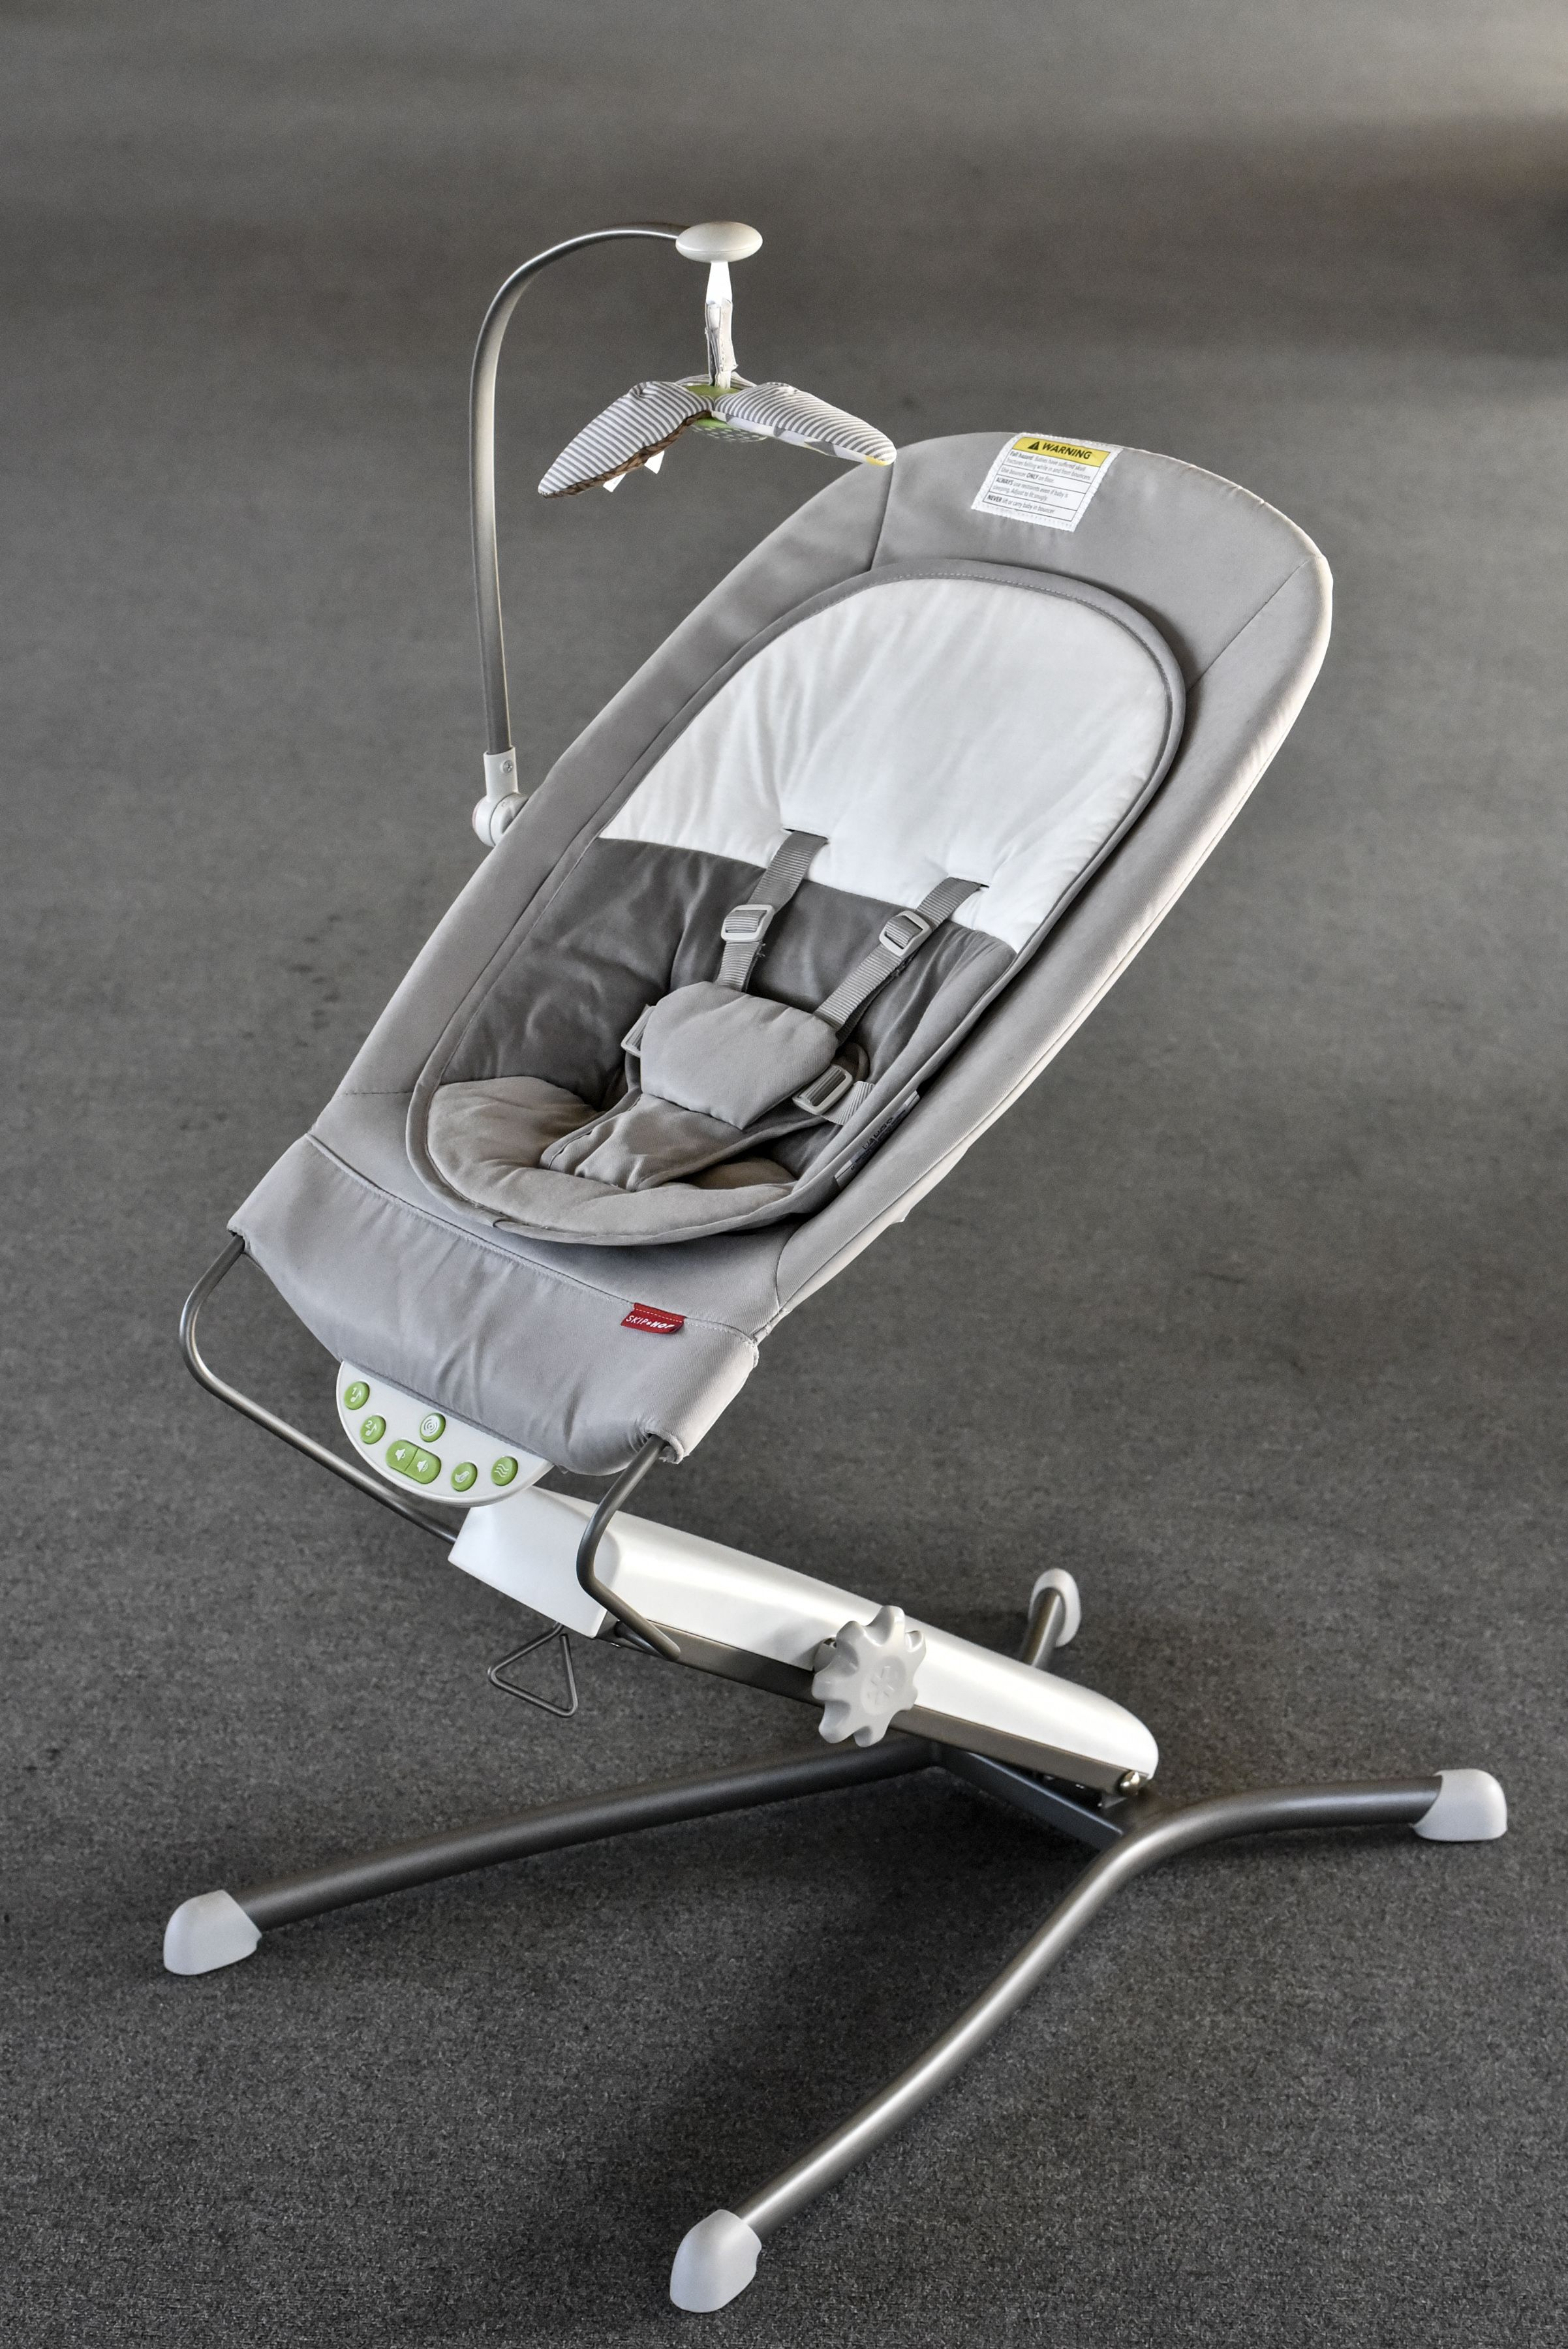 89b2e2a3bd7 Uplift Multi-Level Baby Bouncer from Skip Hop